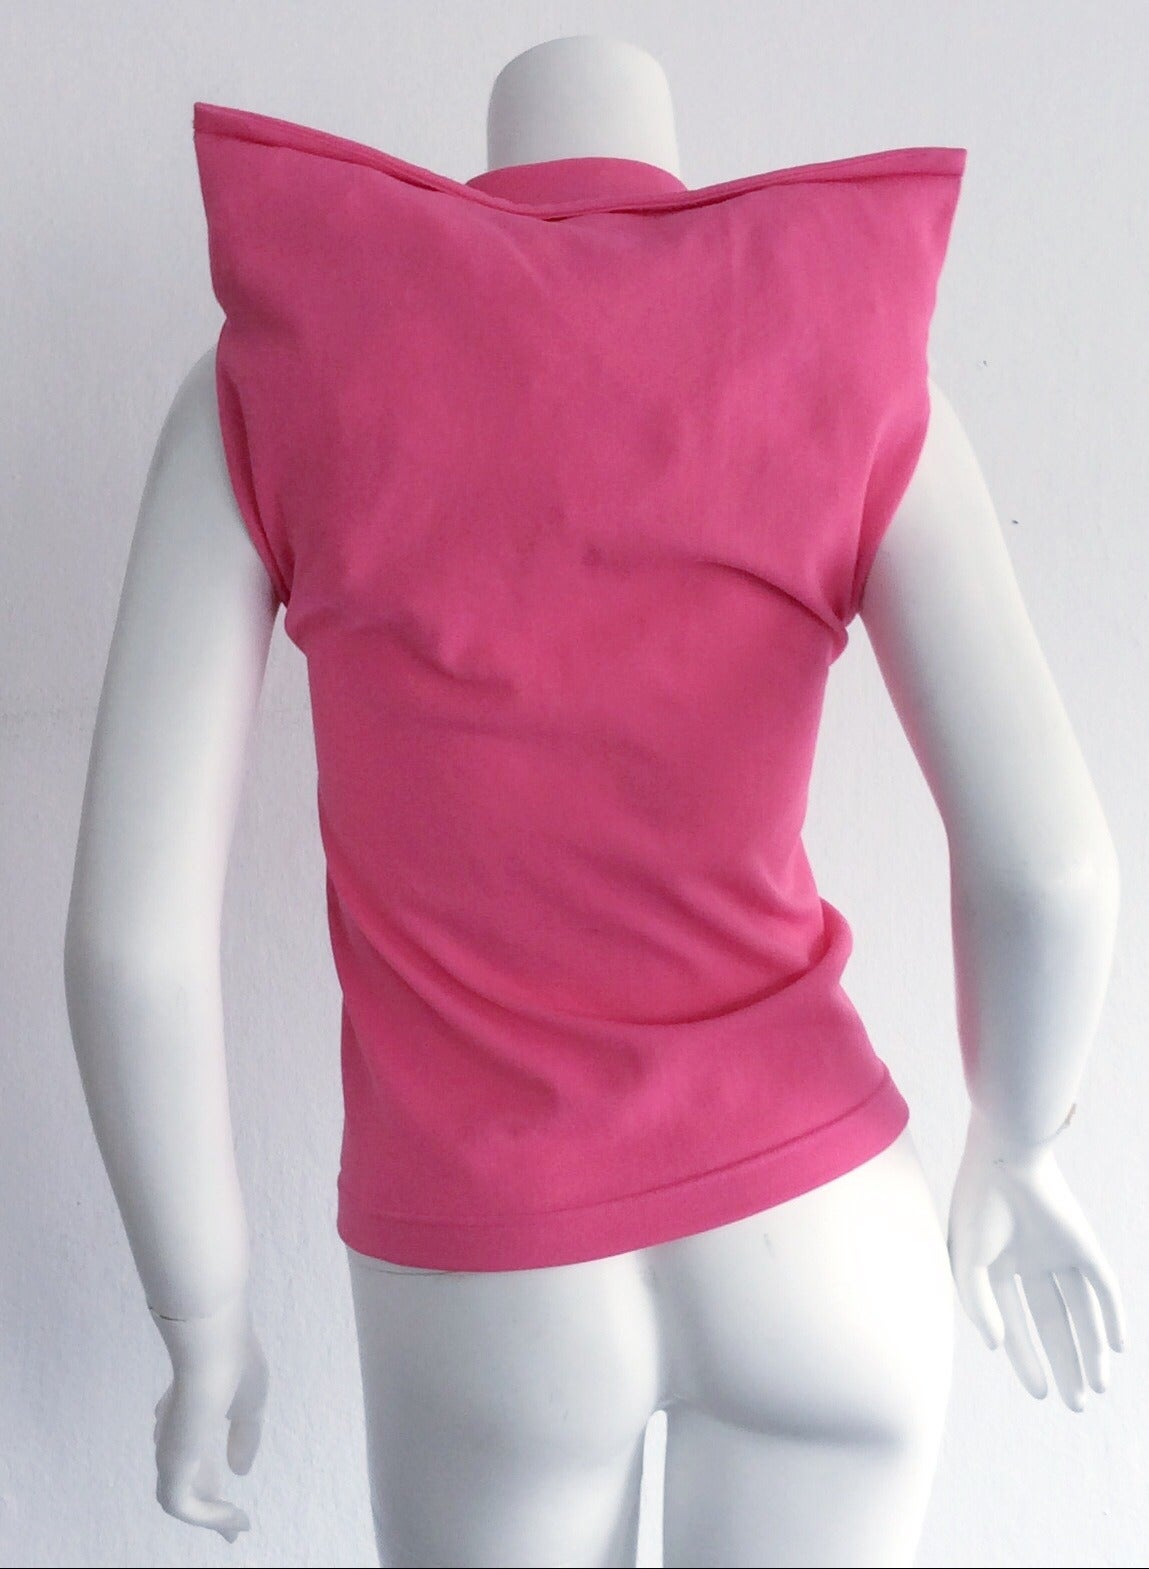 1990s Vintage Comme des Garcons Hot Pink ' Judy Jetson ' Shirt Blouse In Excellent Condition For Sale In San Francisco, CA